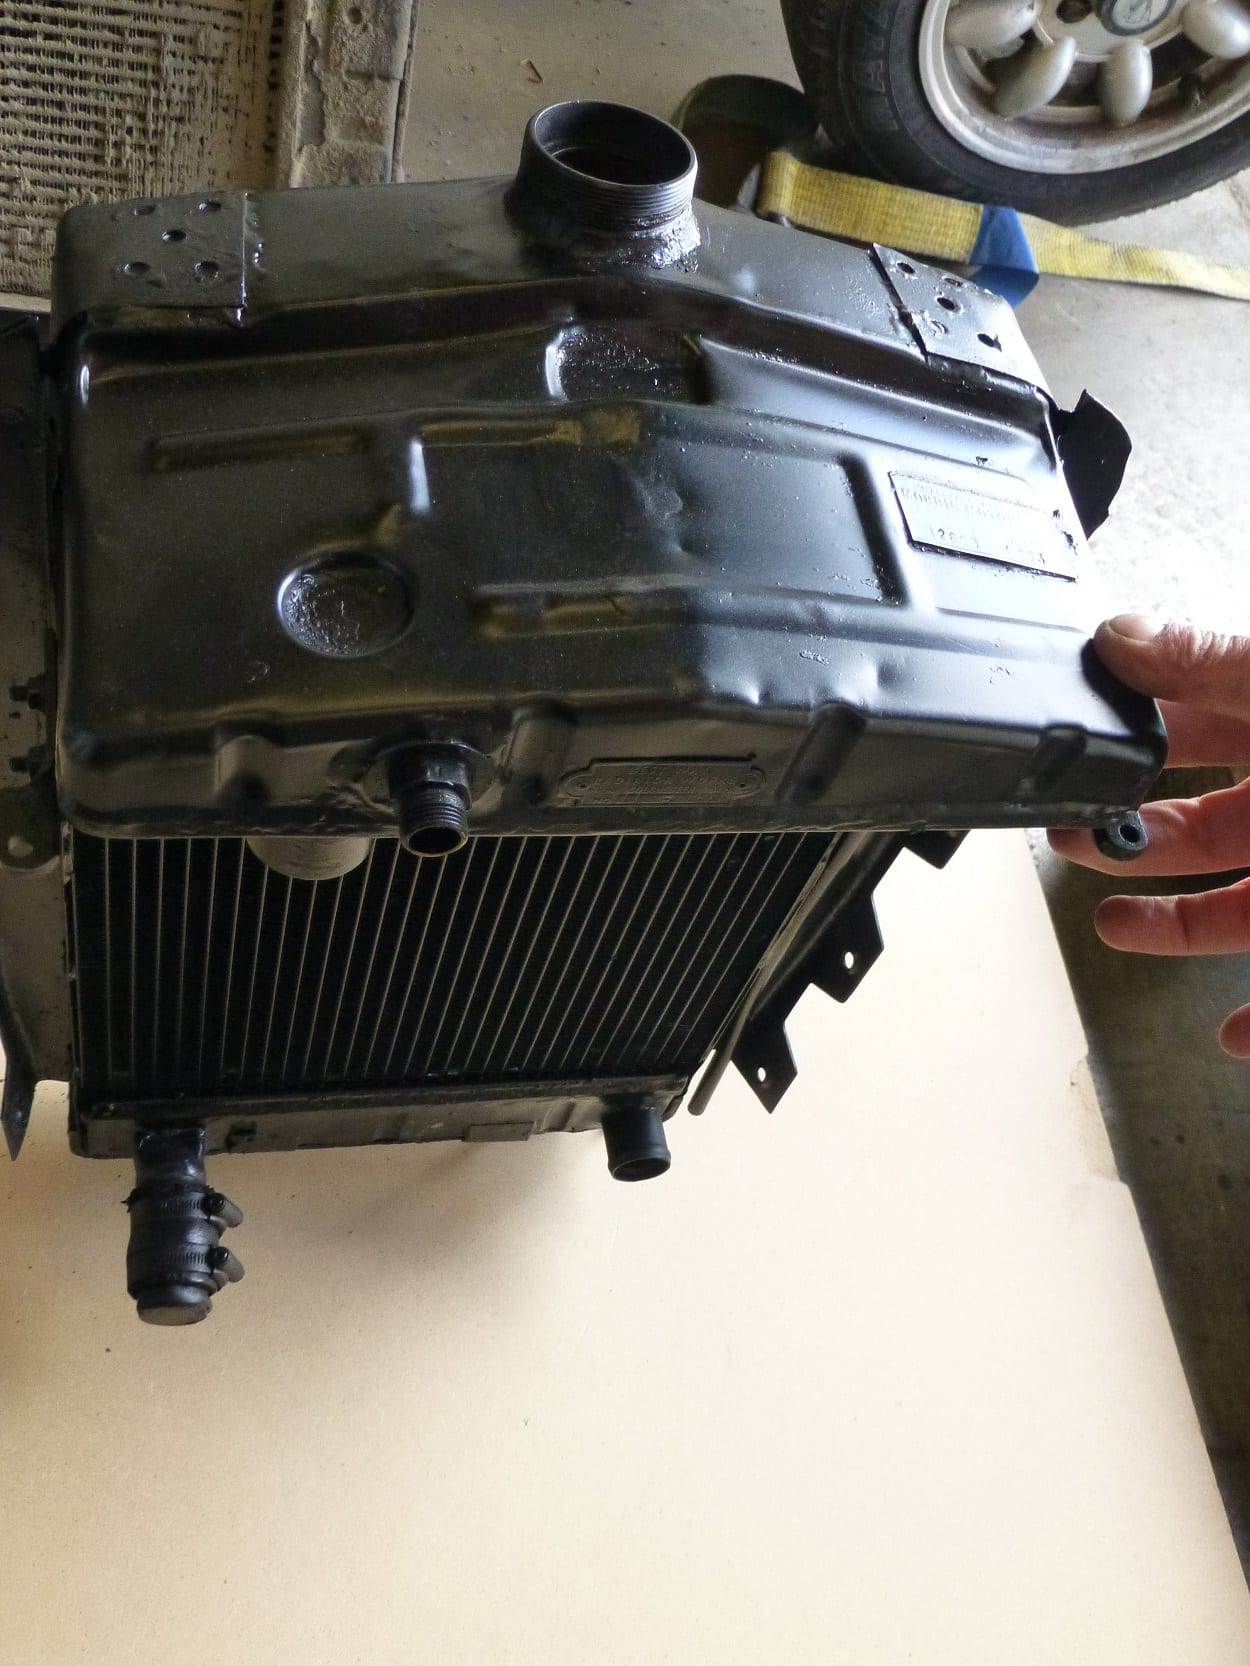 Rover 12 1938 Radiator. Tested and found to be okay. St Austell Cornwall